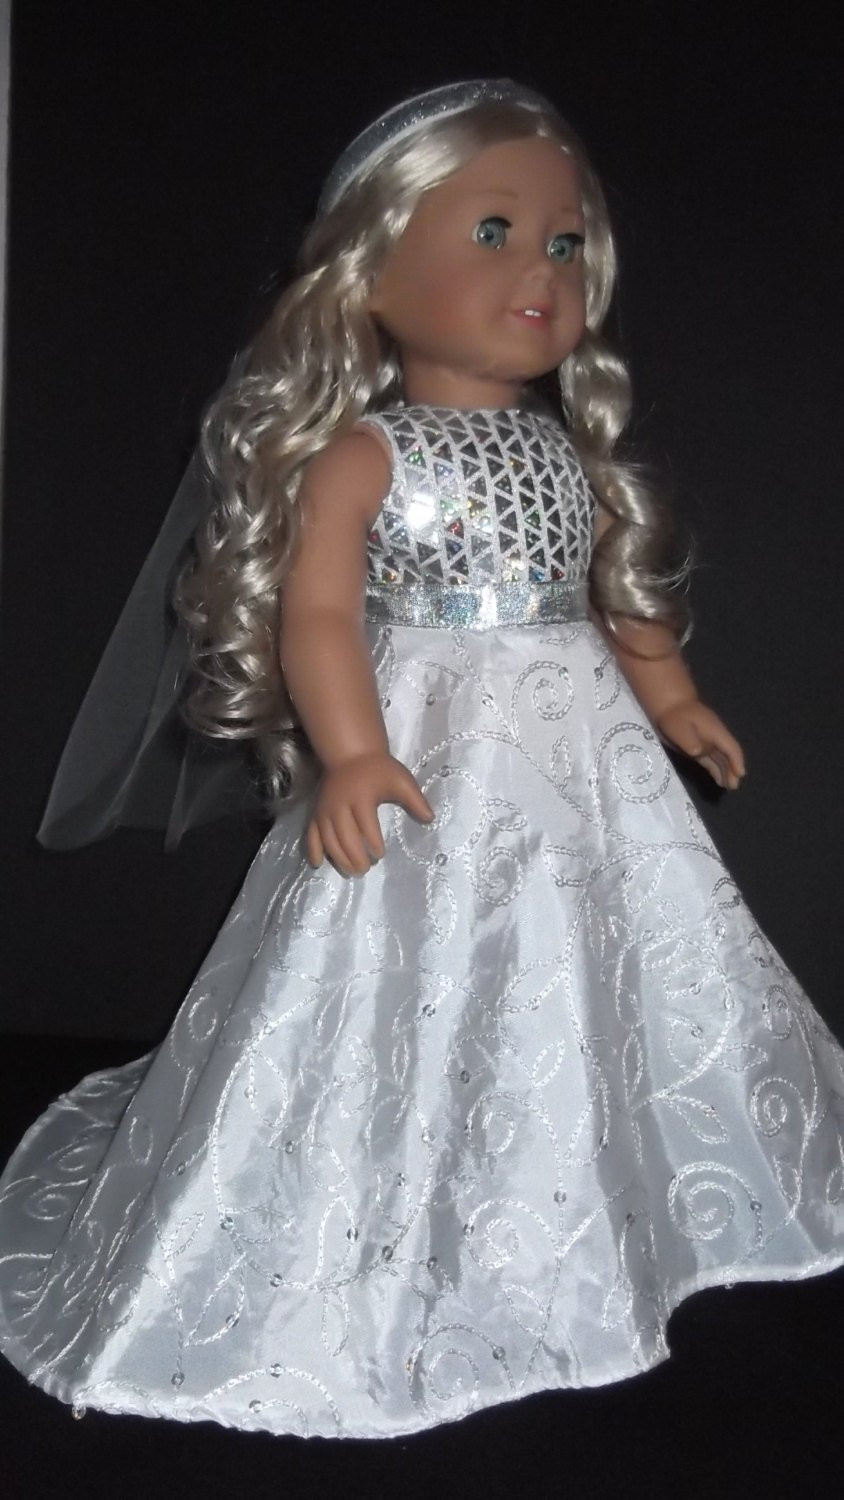 Best Of American Girl Doll Clothes Wedding Gown and Veil 257 American Girl Doll Wedding Dress Of Awesome 39 Photos American Girl Doll Wedding Dress